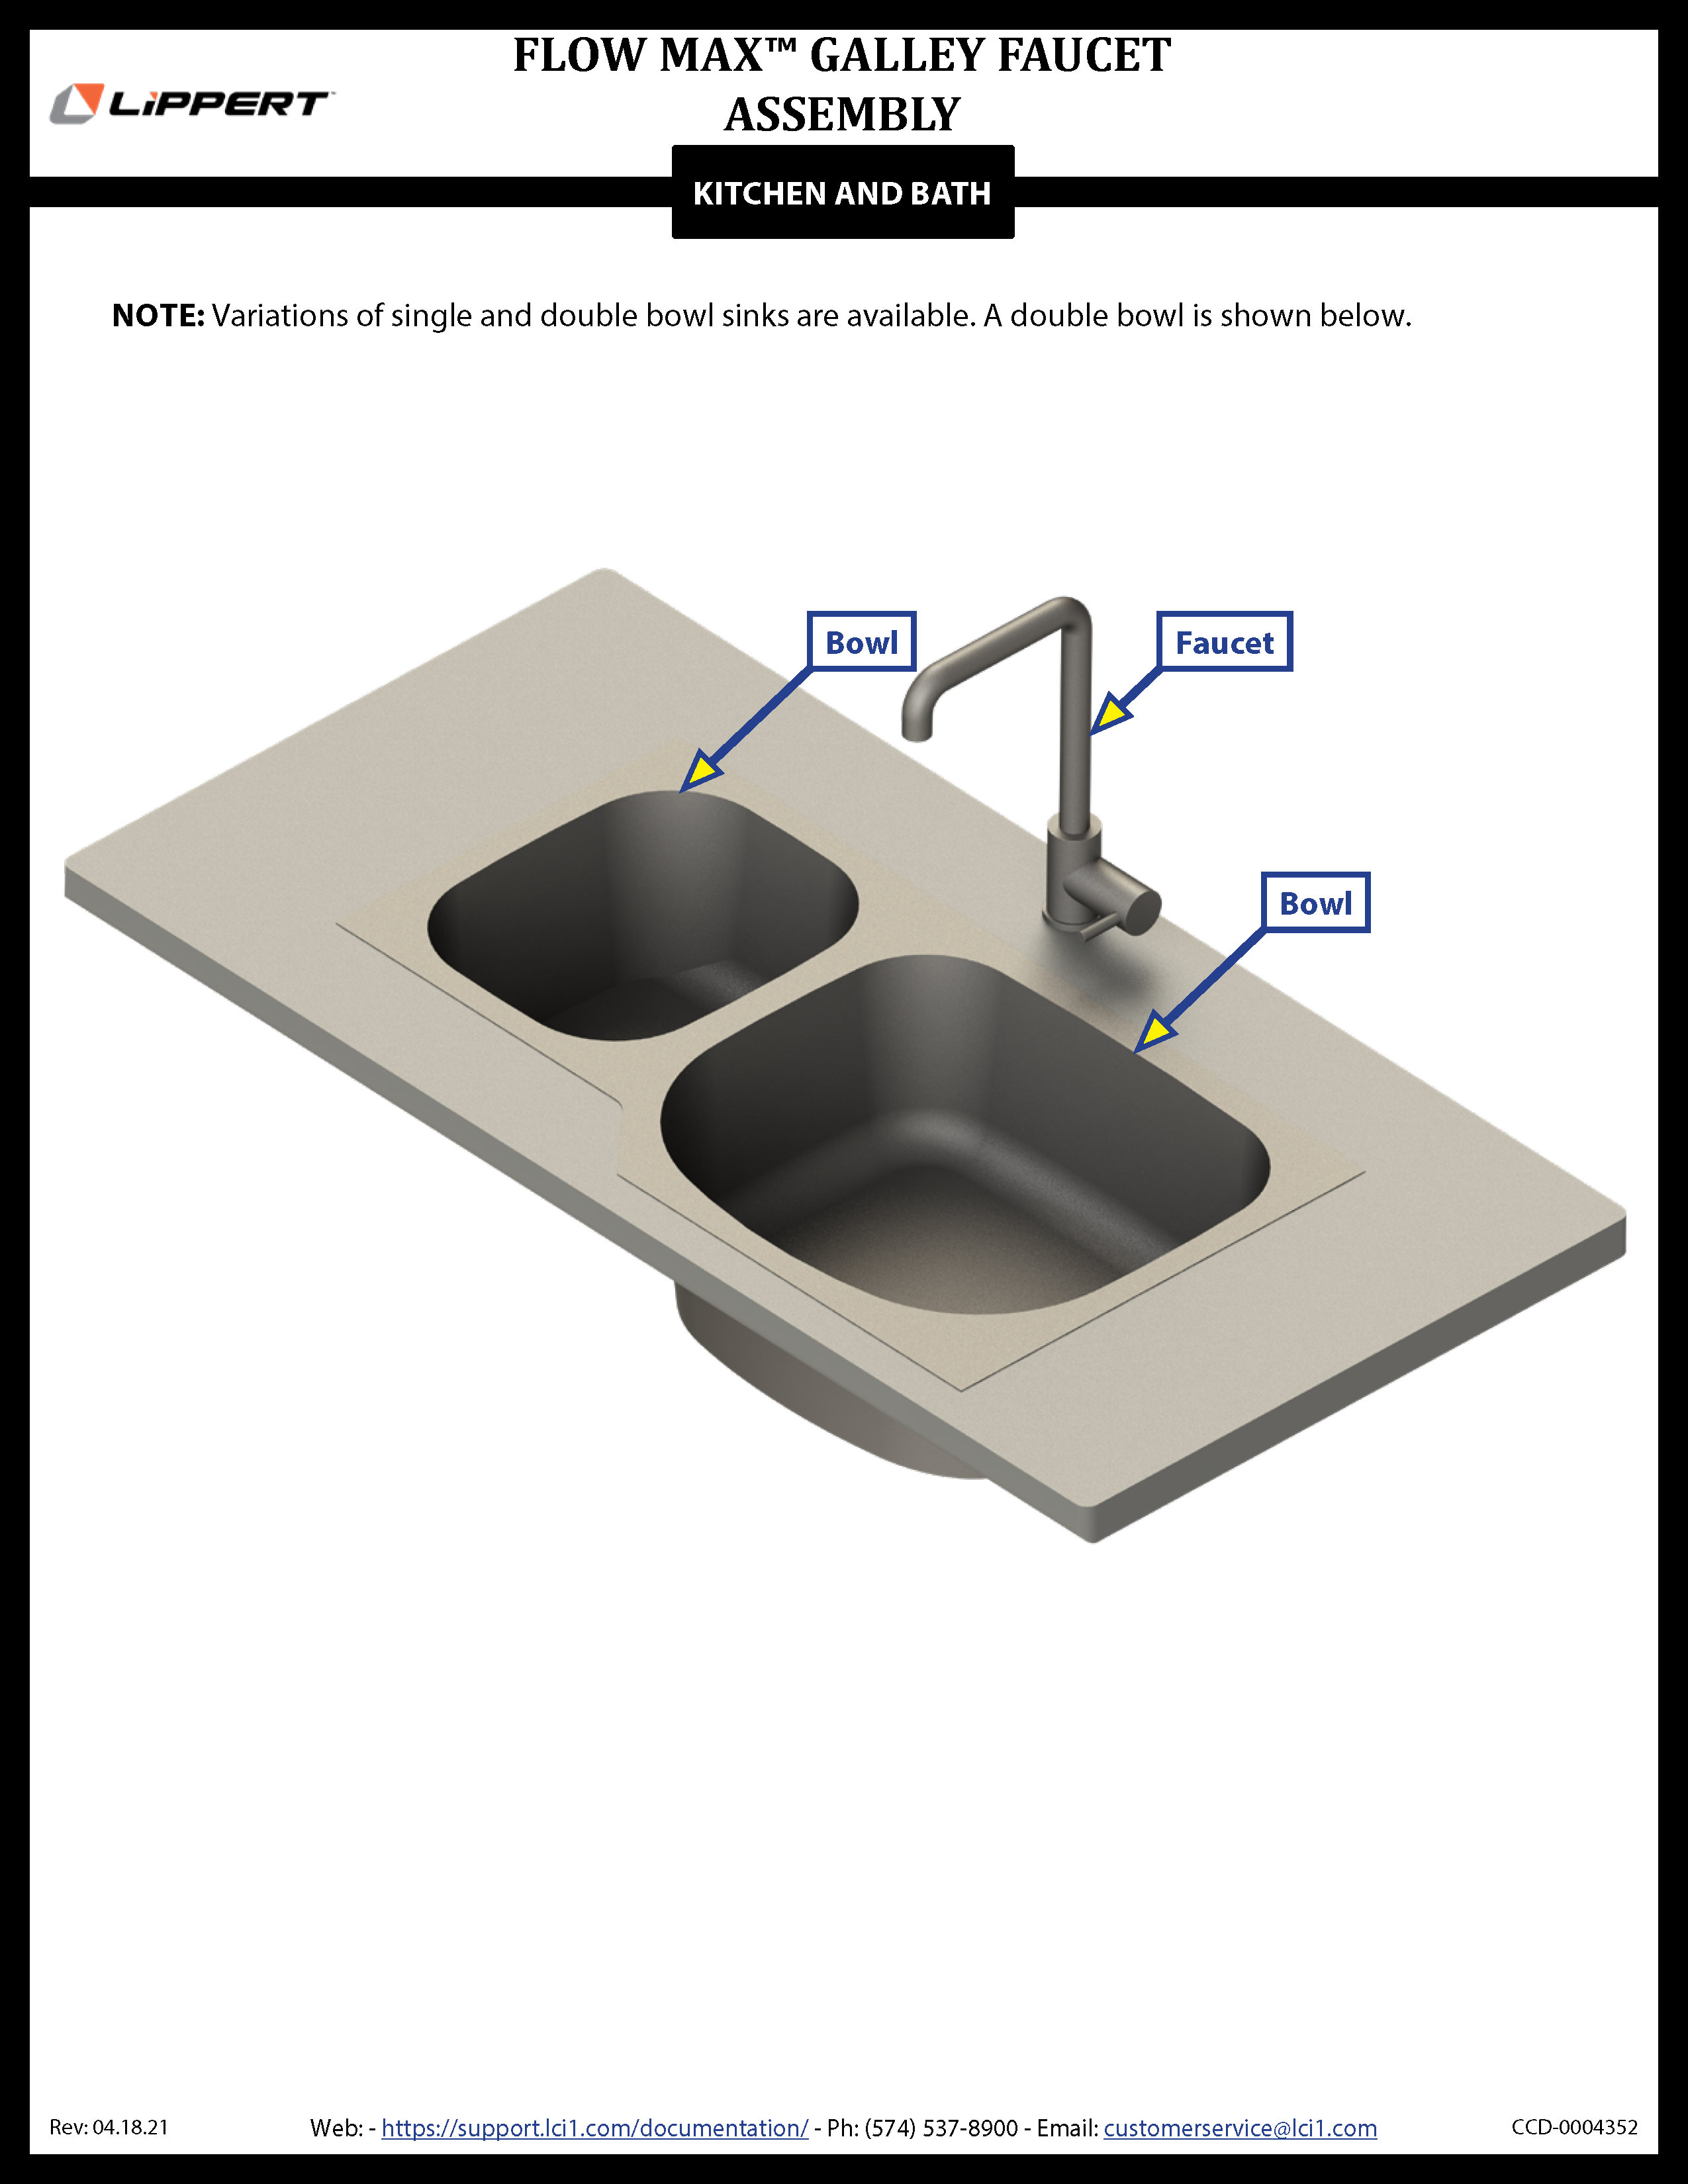 Flow Max® Galley Faucet Assembly